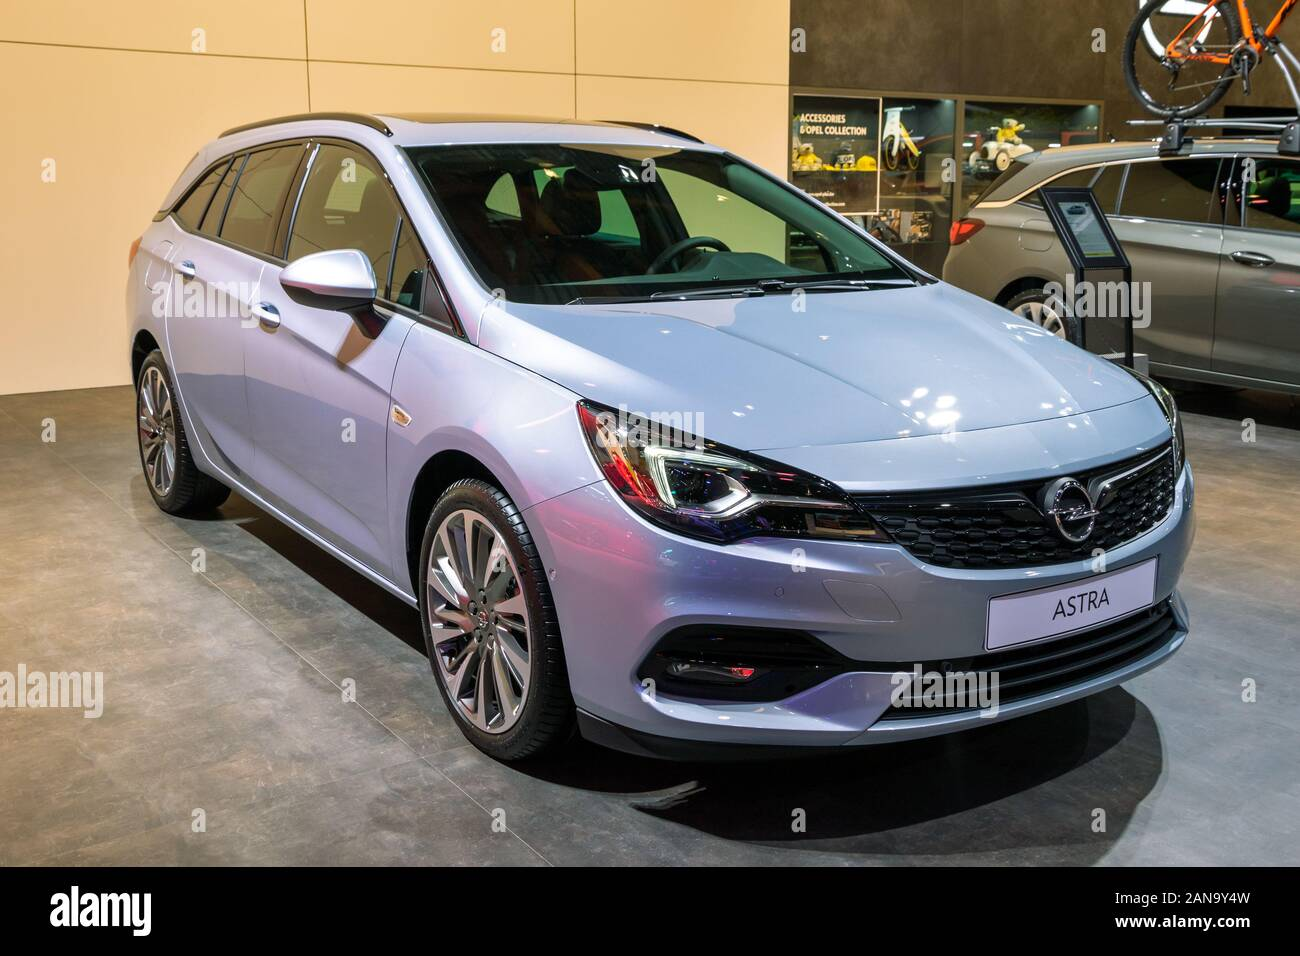 Opel Astra High Resolution Stock Photography And Images Alamy